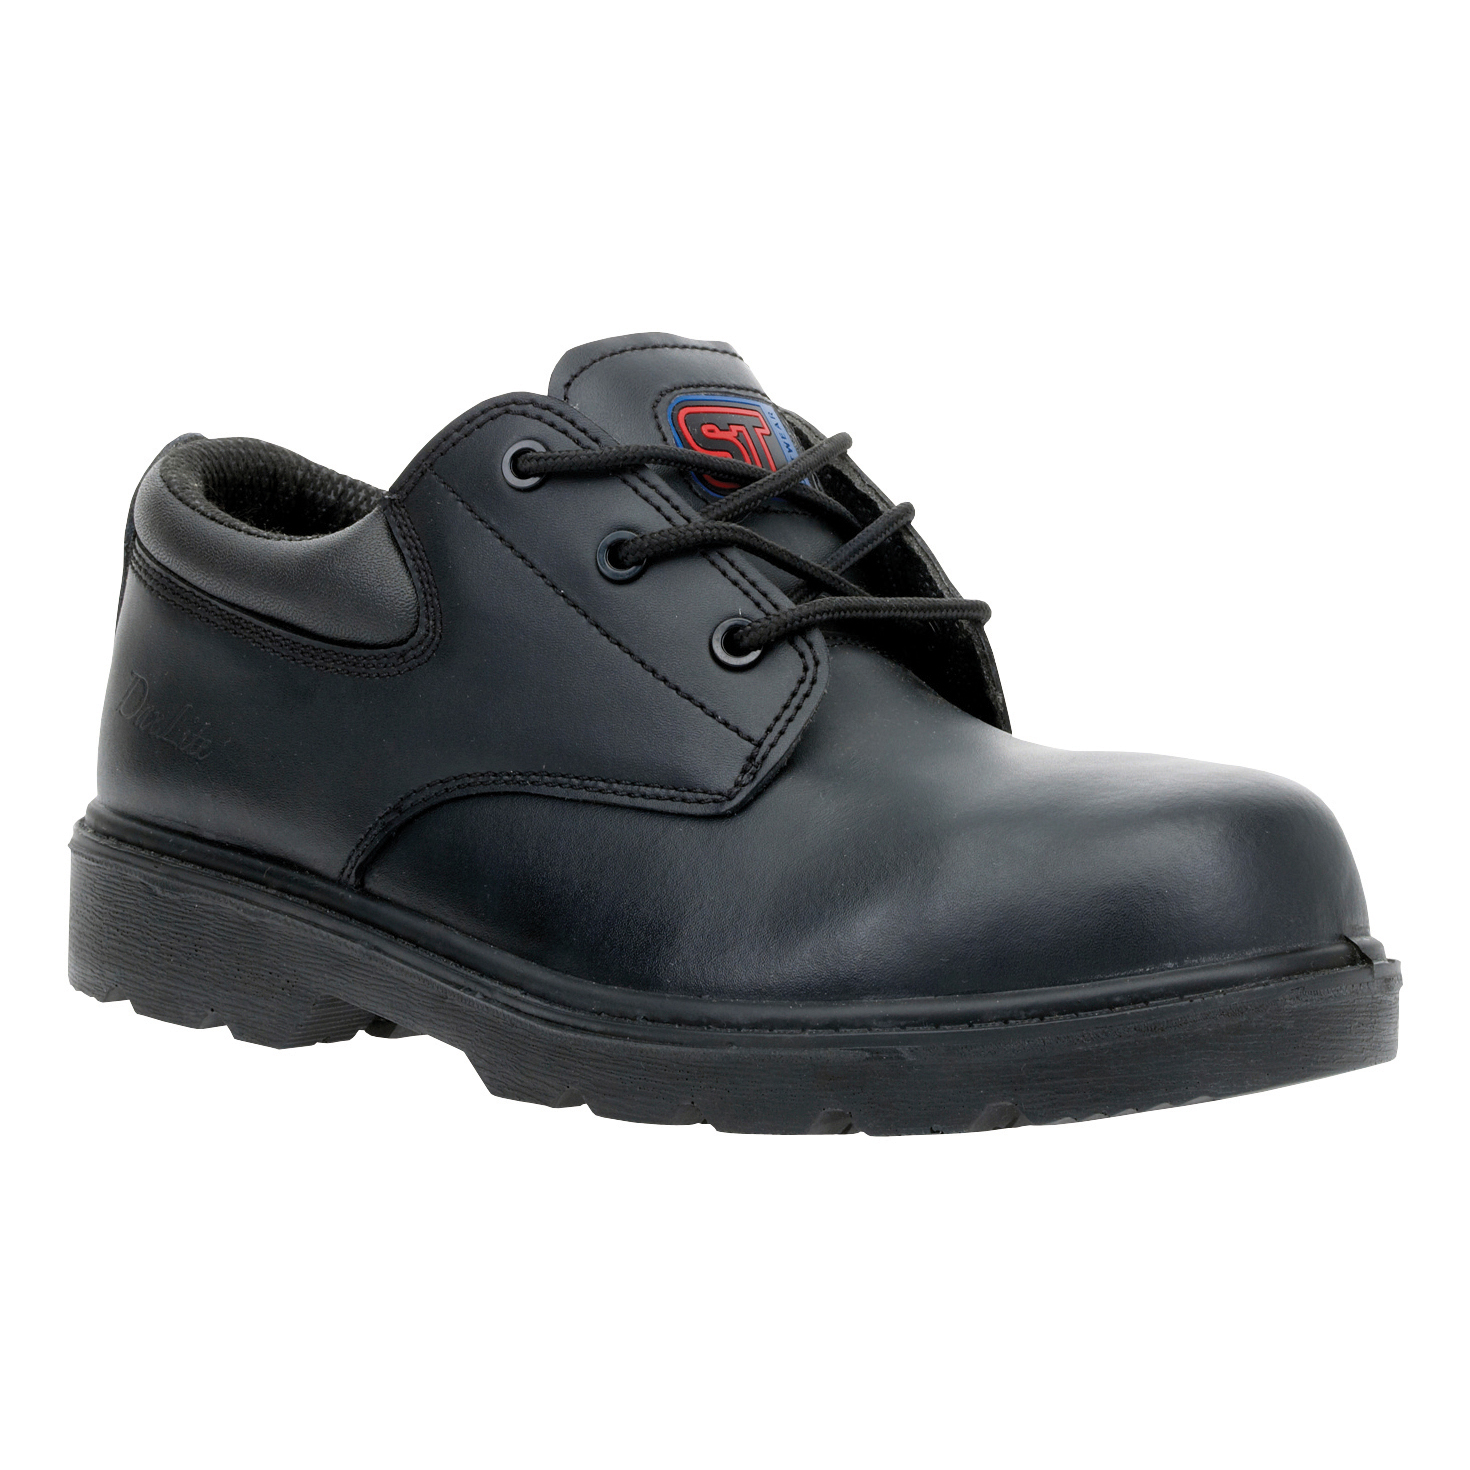 ST Dax Lite Air Comp' Shoe Metal Free Safety Toecap & Midsole Size 8 Blk Ref 90863 *Approx 3 Day L/Time*